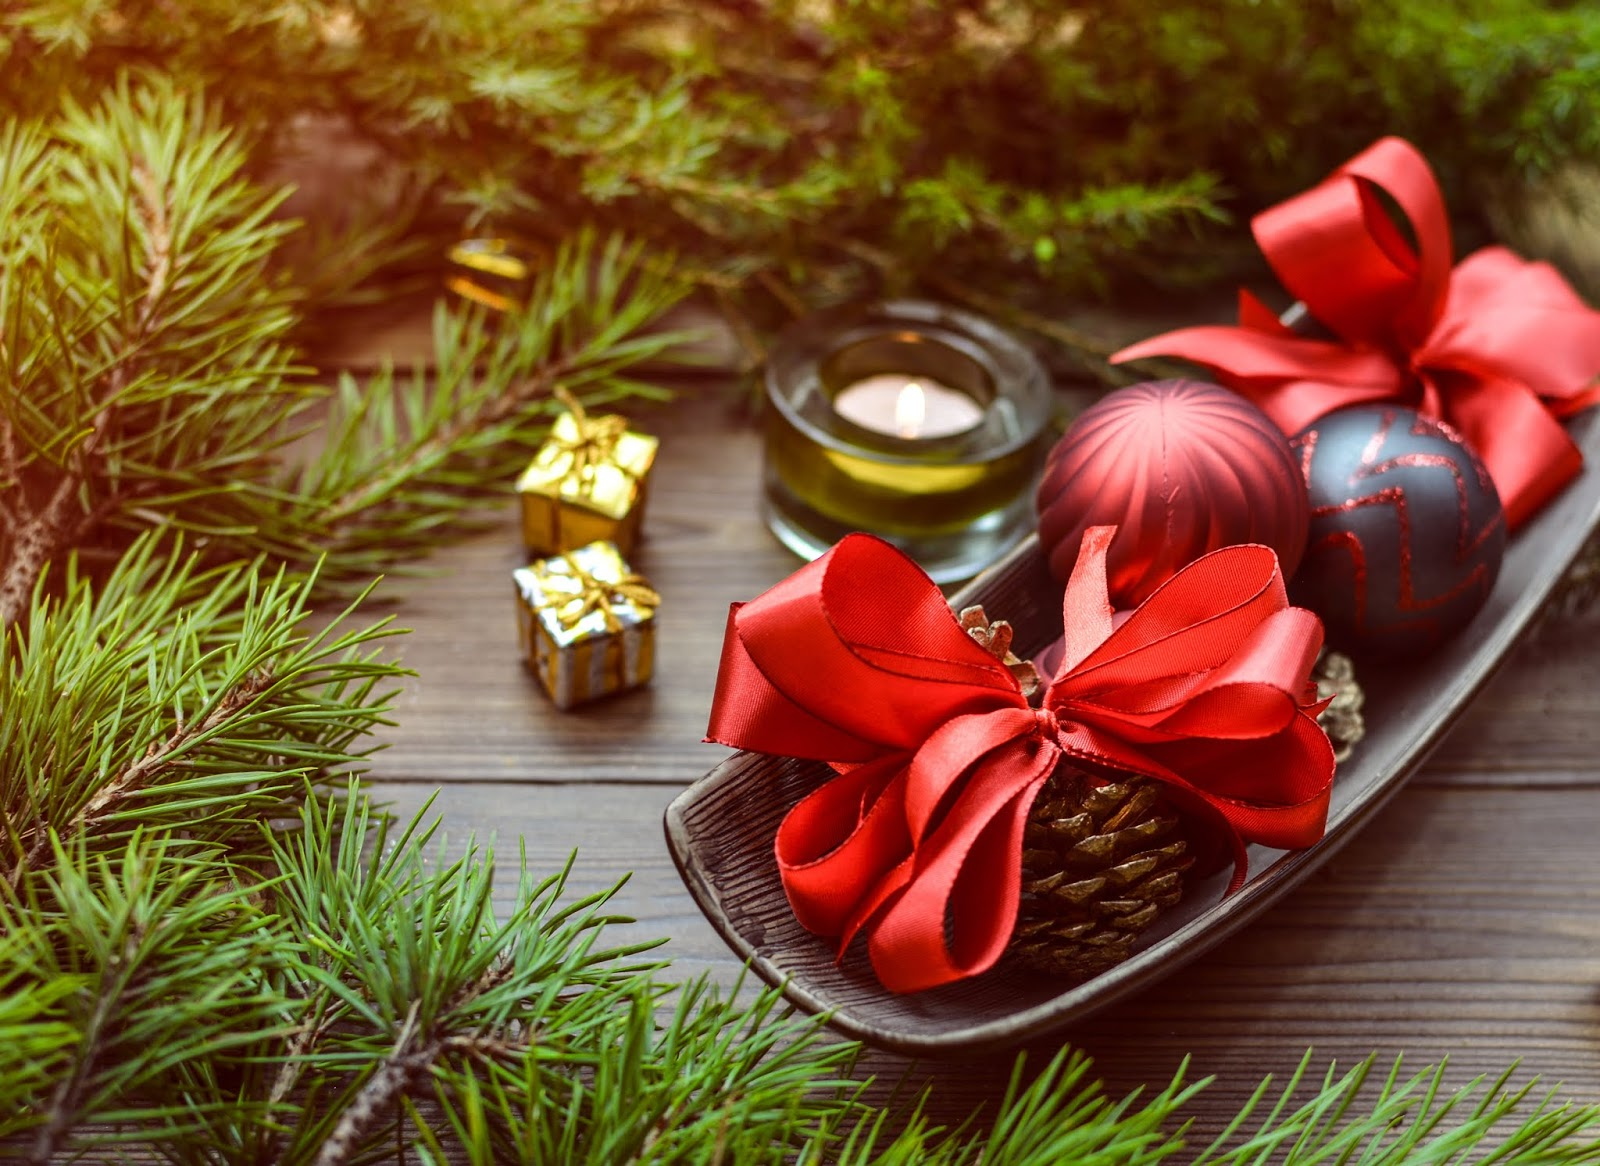 12 Unique Free Christmas Hd Wallpapers To Download